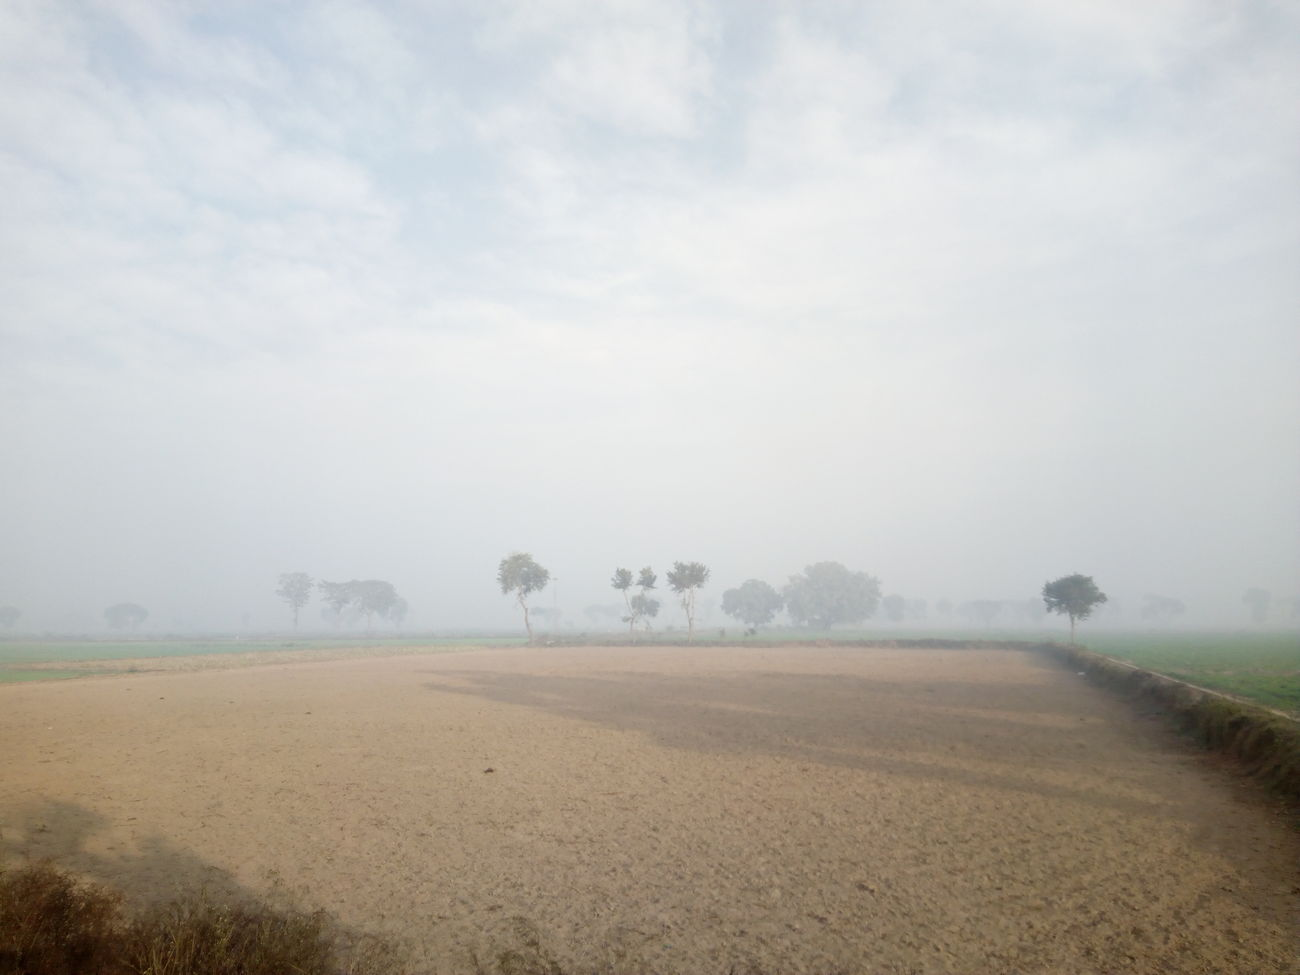 Fog Agriculture Landscape Weather Nature Tranquility Rural Scene Plowed Field Tree Tranquil Scene Beauty In Nature Day Sky Scenics Outdoors No People